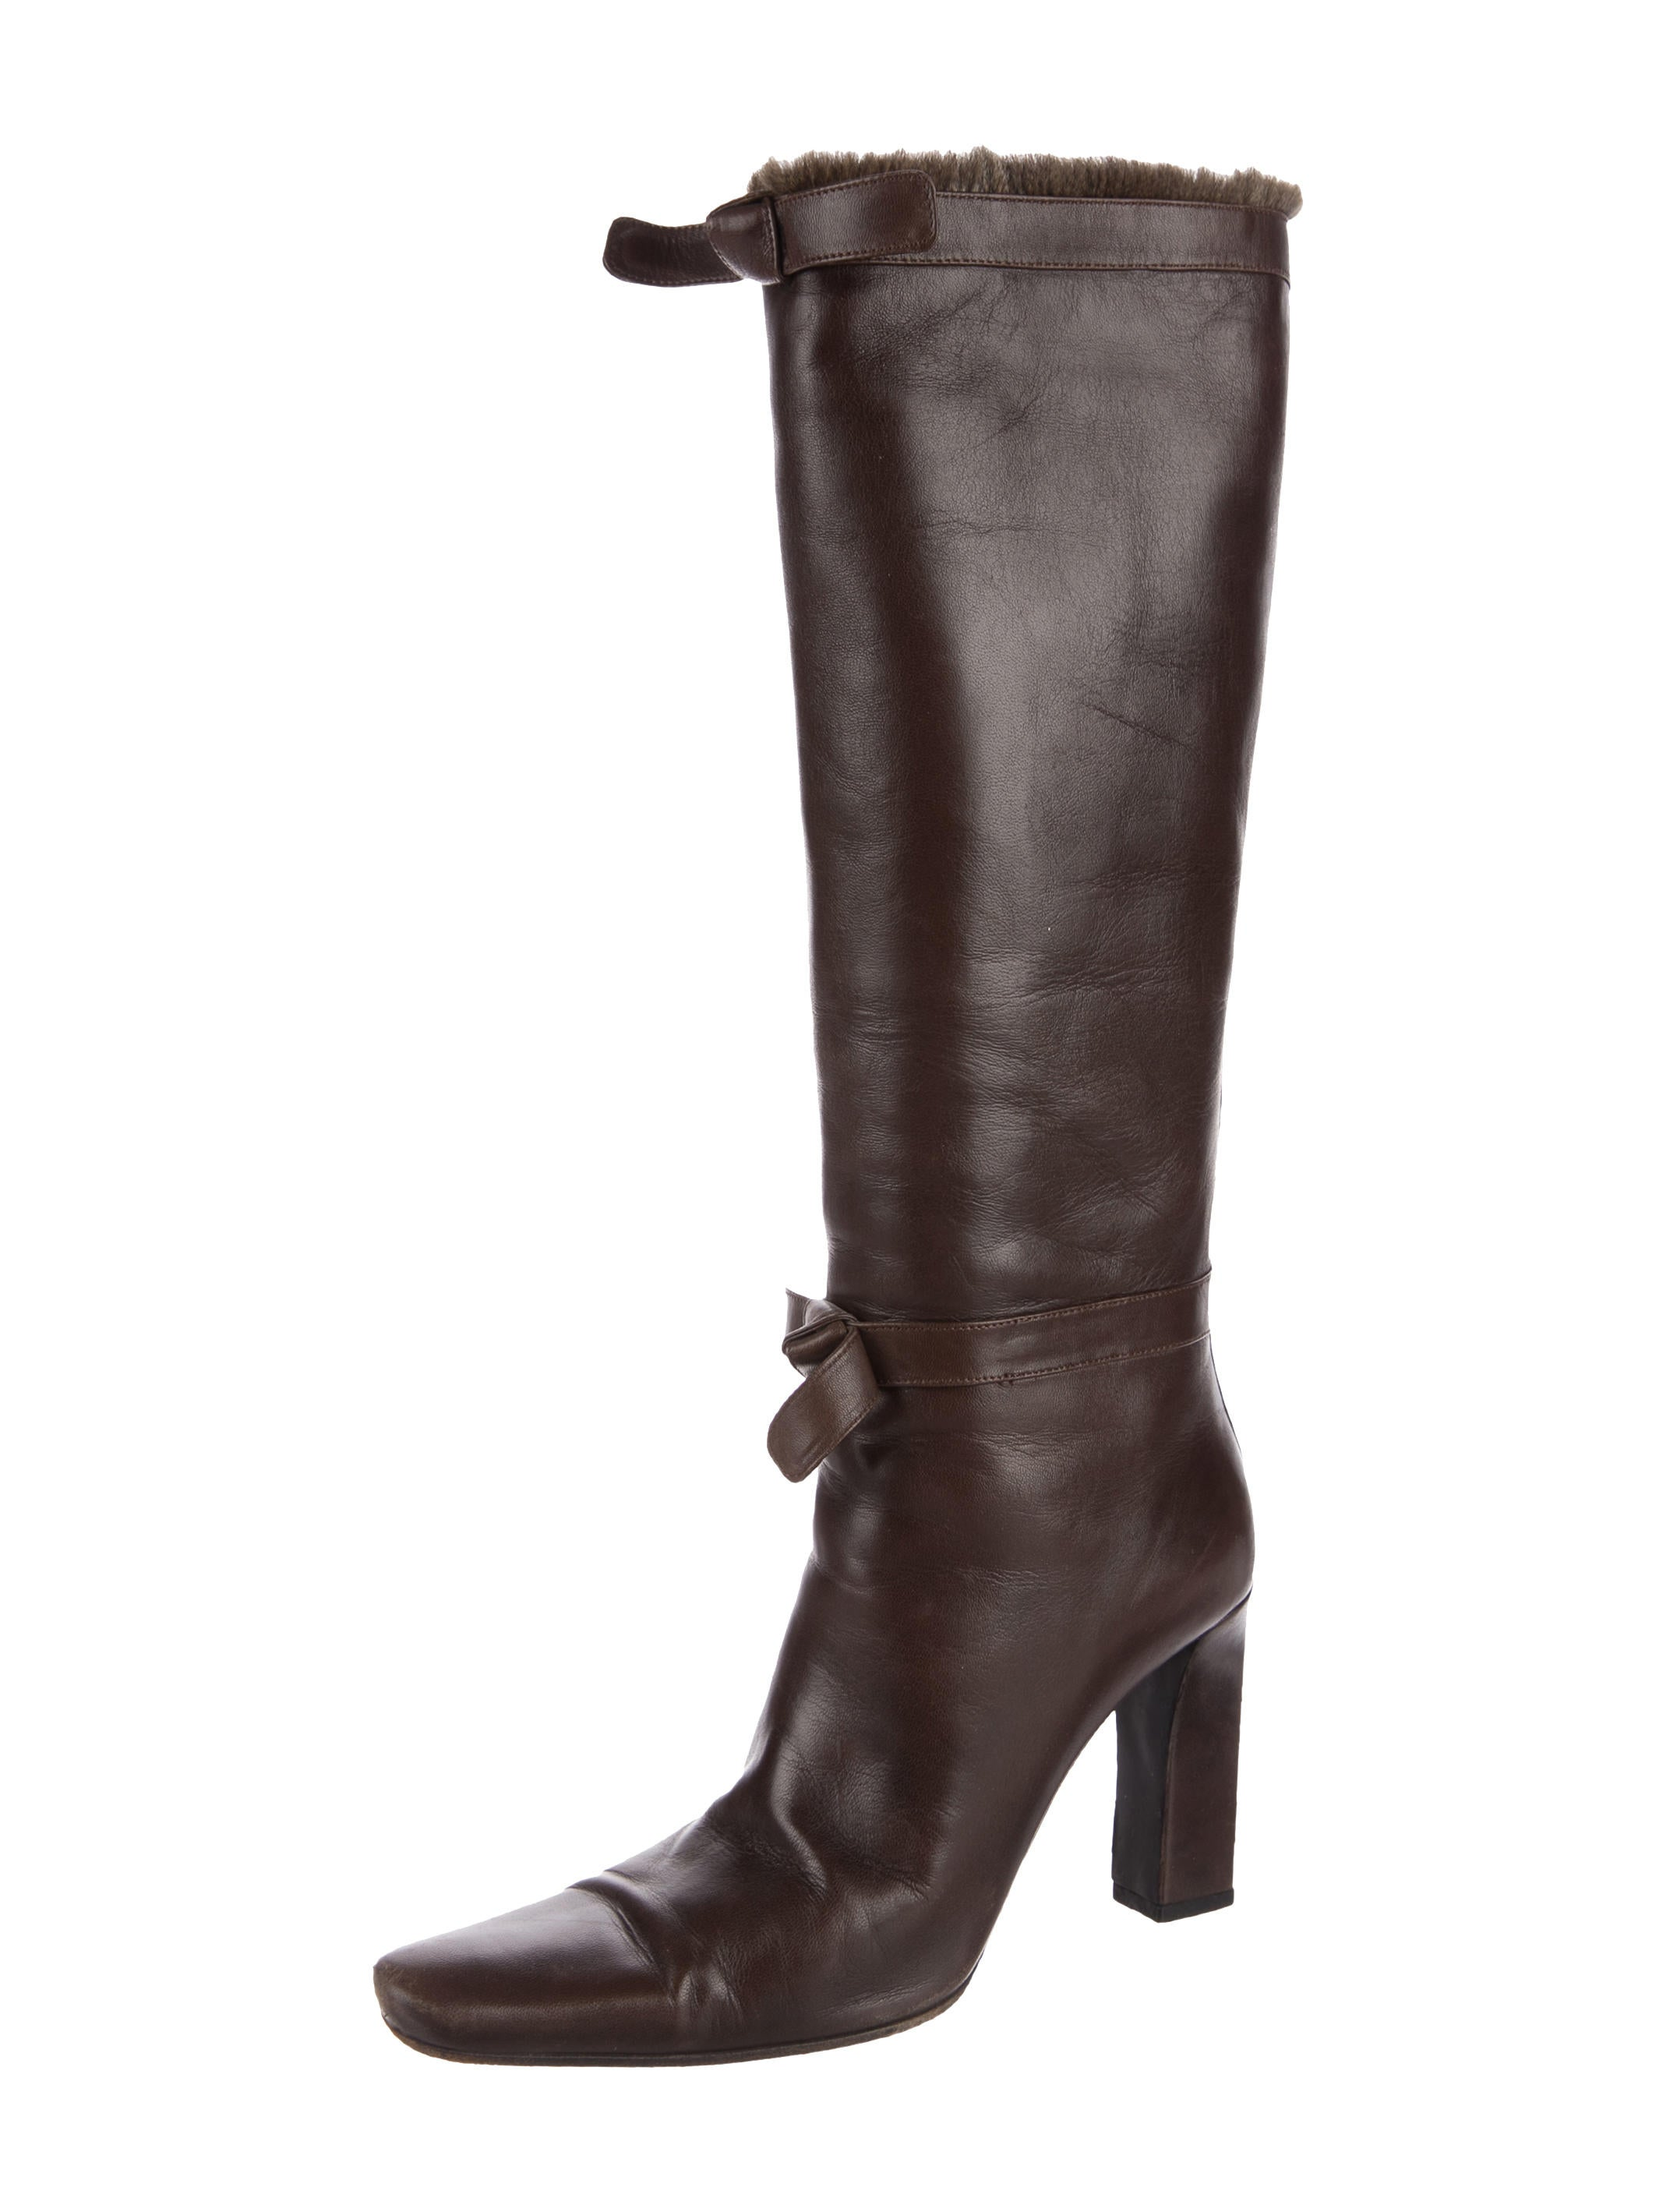 cheap shop offer sale fake Prada Rabbit-Trimmed Knee-High Boots oqS7t